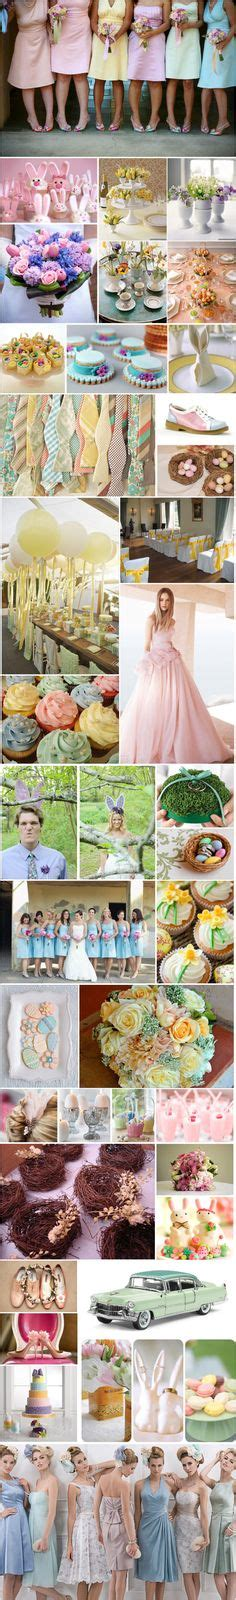 easter 2017 trends 1000 images about easter 2017 design trends on pinterest